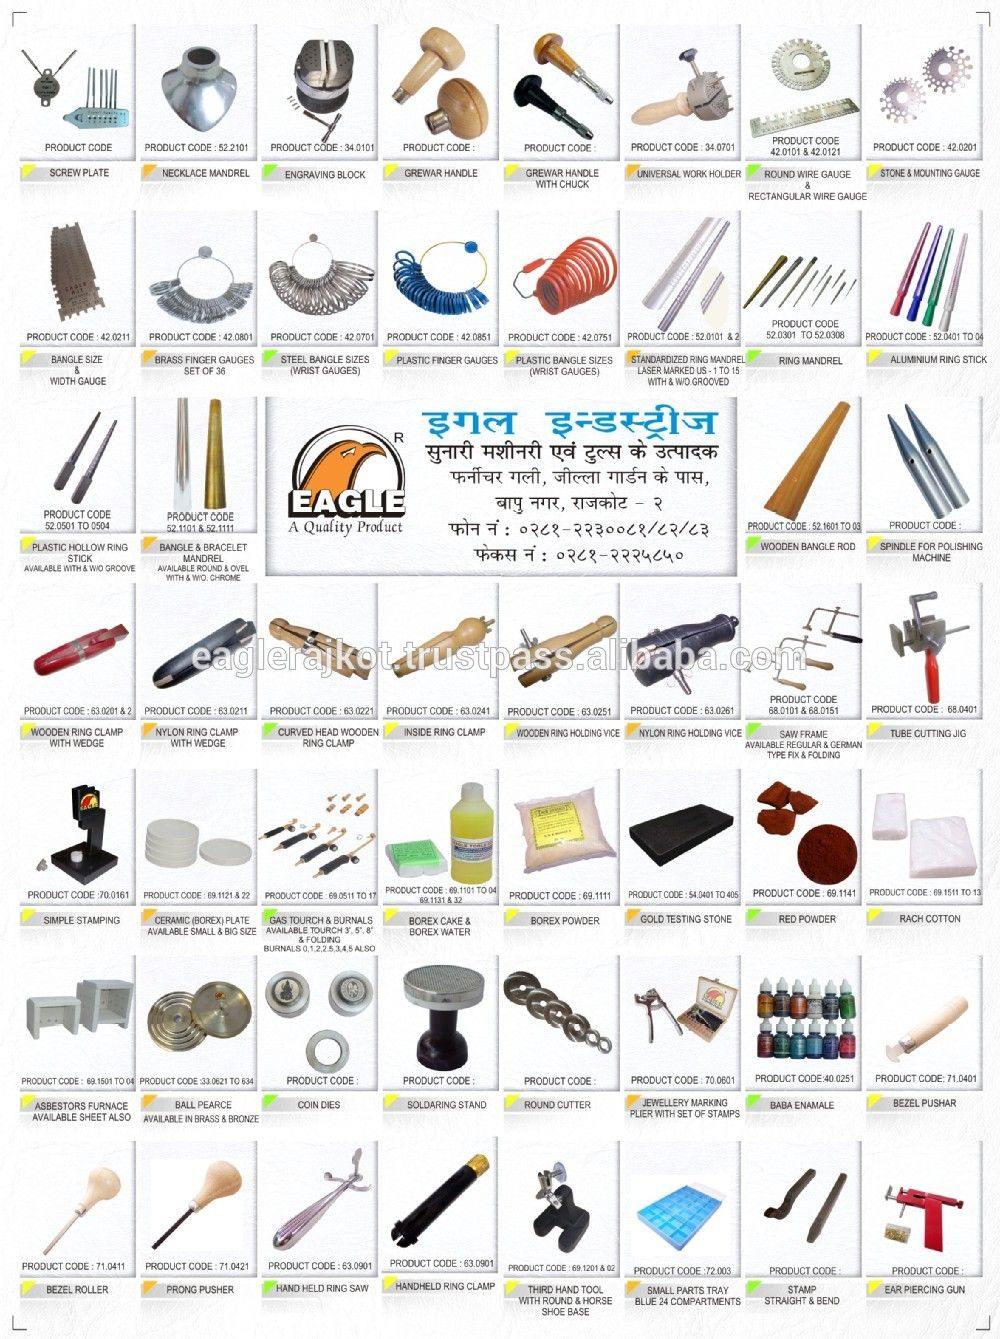 Image result for goldsmith tools equipment tools